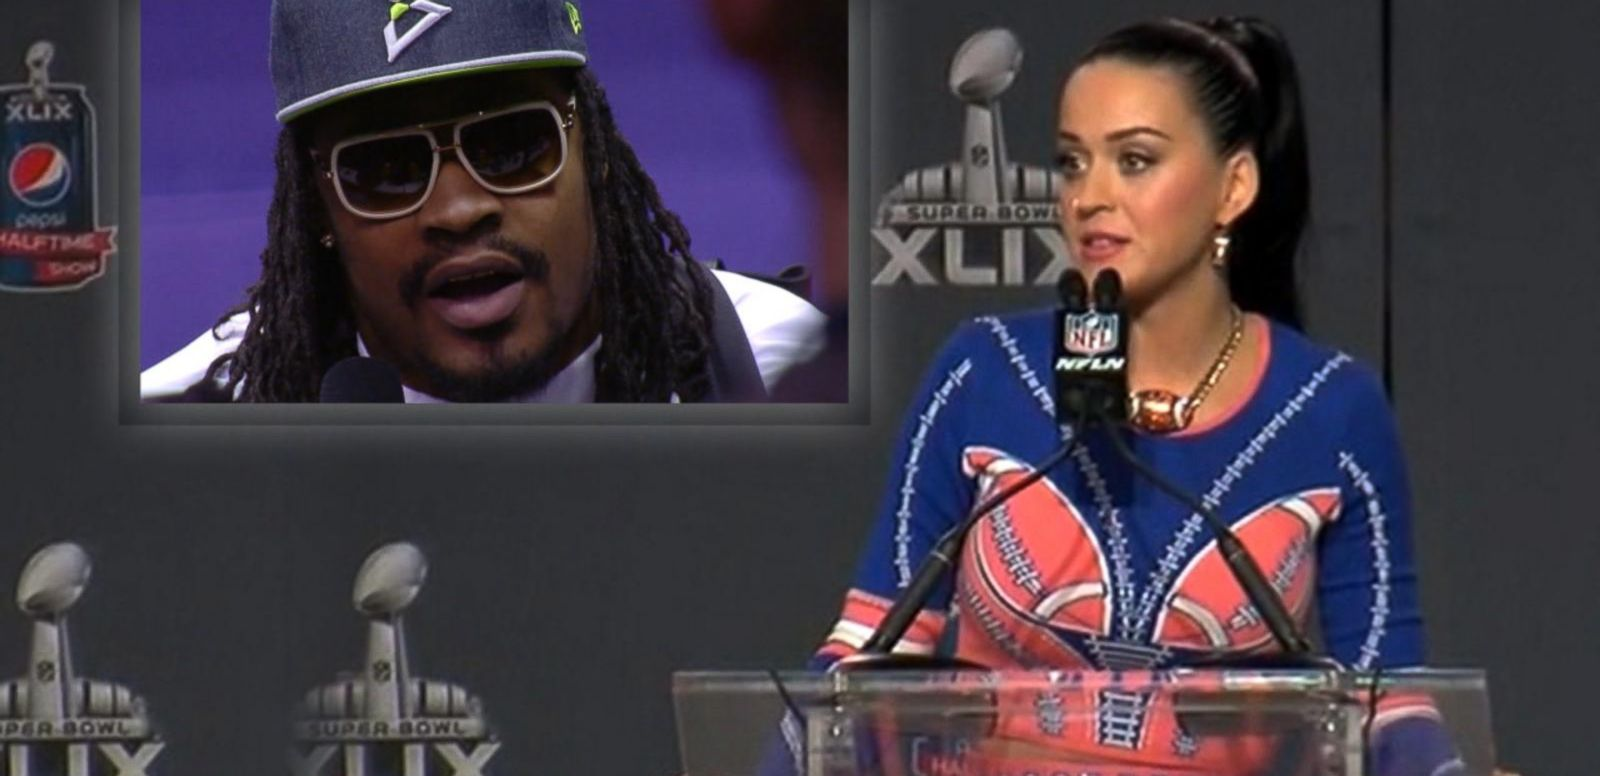 VIDEO: Katy Perry on Half-Time Show: 'Jaws Will Drop and Faces Will Melt'